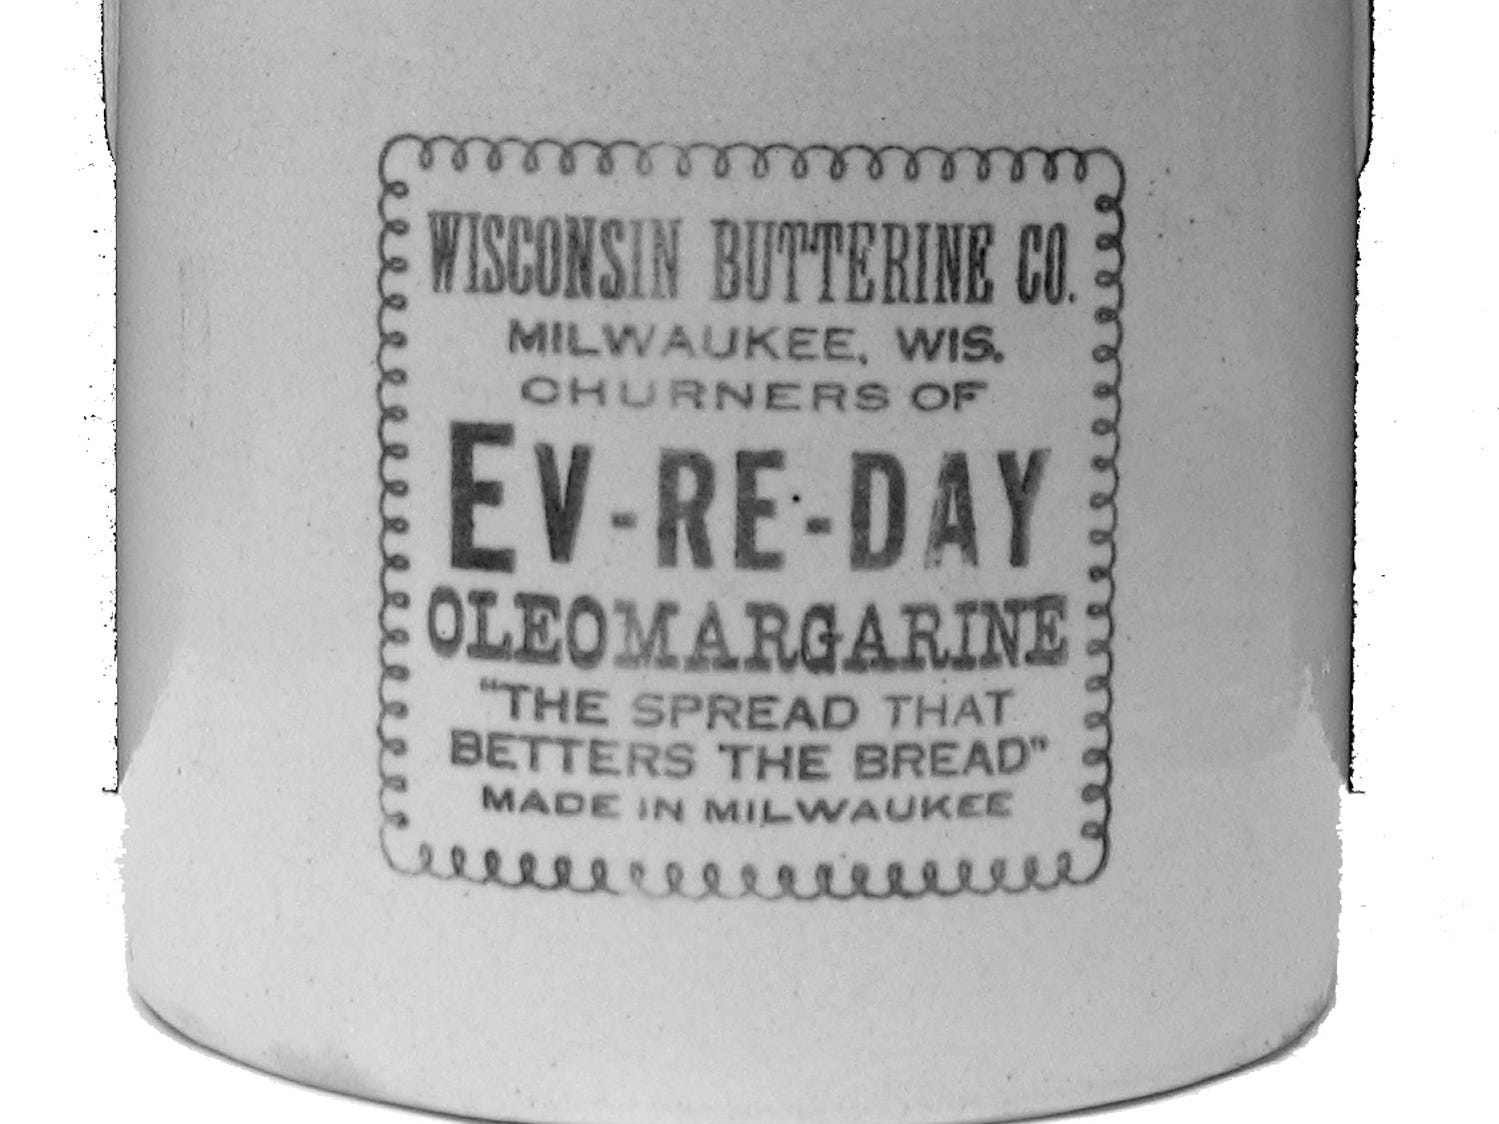 """The oleo wars have a long history in Wisconsin. This stoneware margarine crock from the early 1900s reflects the margarine-butter controversy in its slogan: """"The Spread that Betters the Bread."""""""